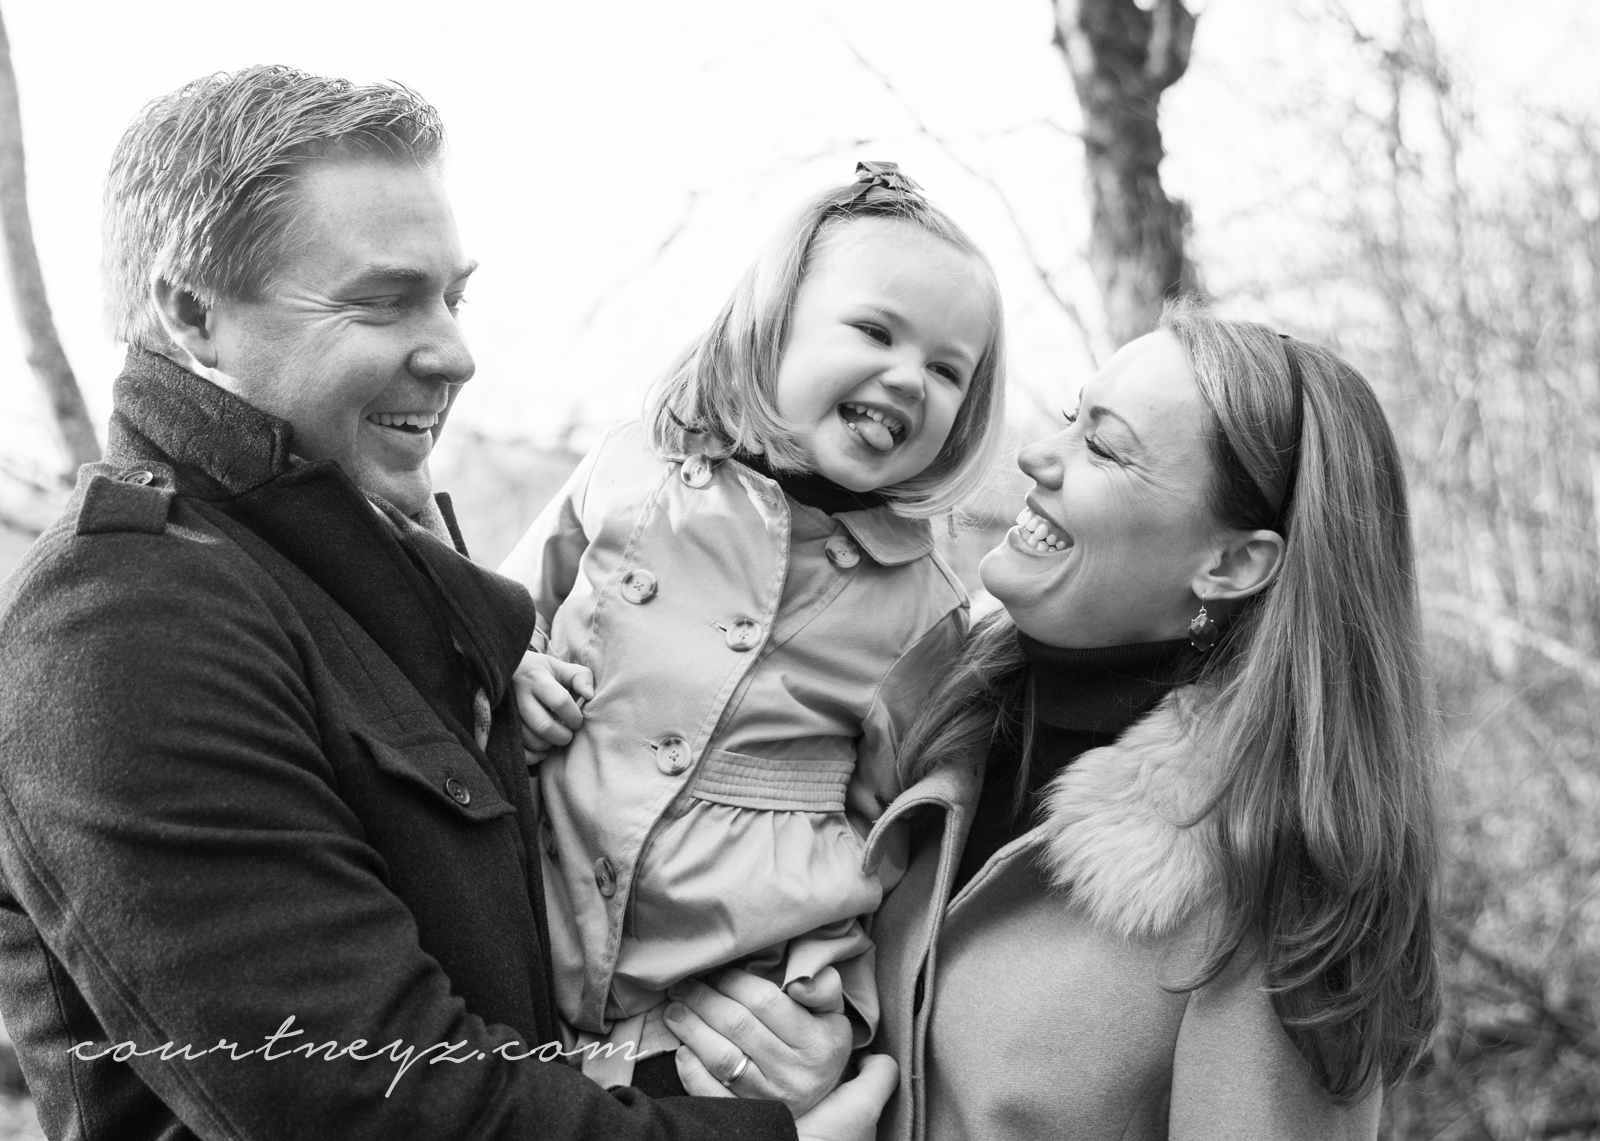 Lifestyle Photography, Portland, OR